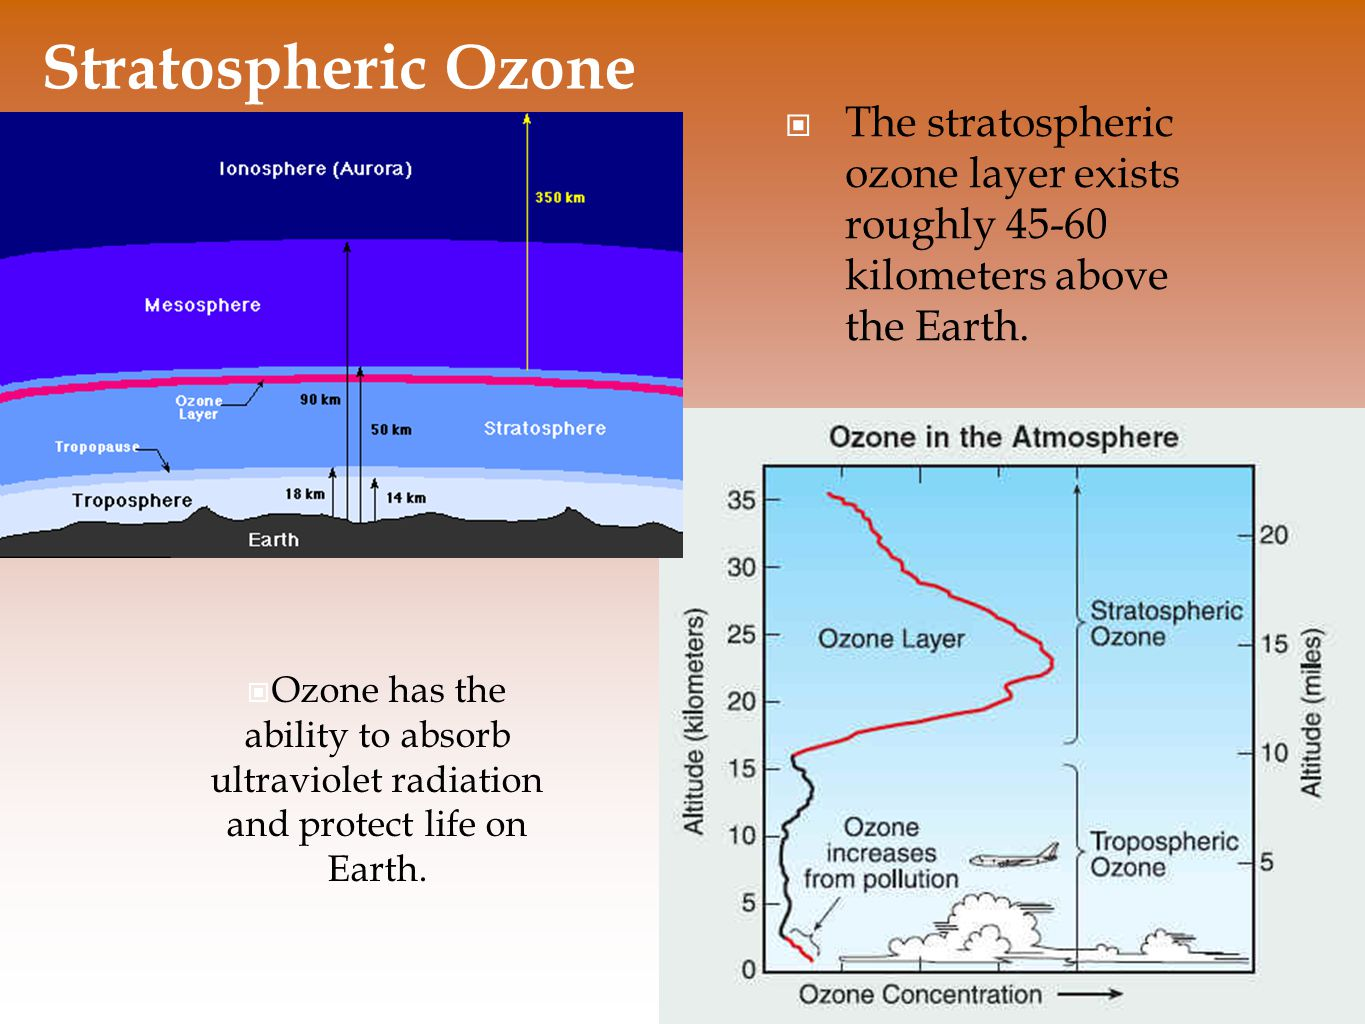 Stratospheric Ozone The stratospheric ozone layer exists roughly 45-60 kilometers above the Earth.